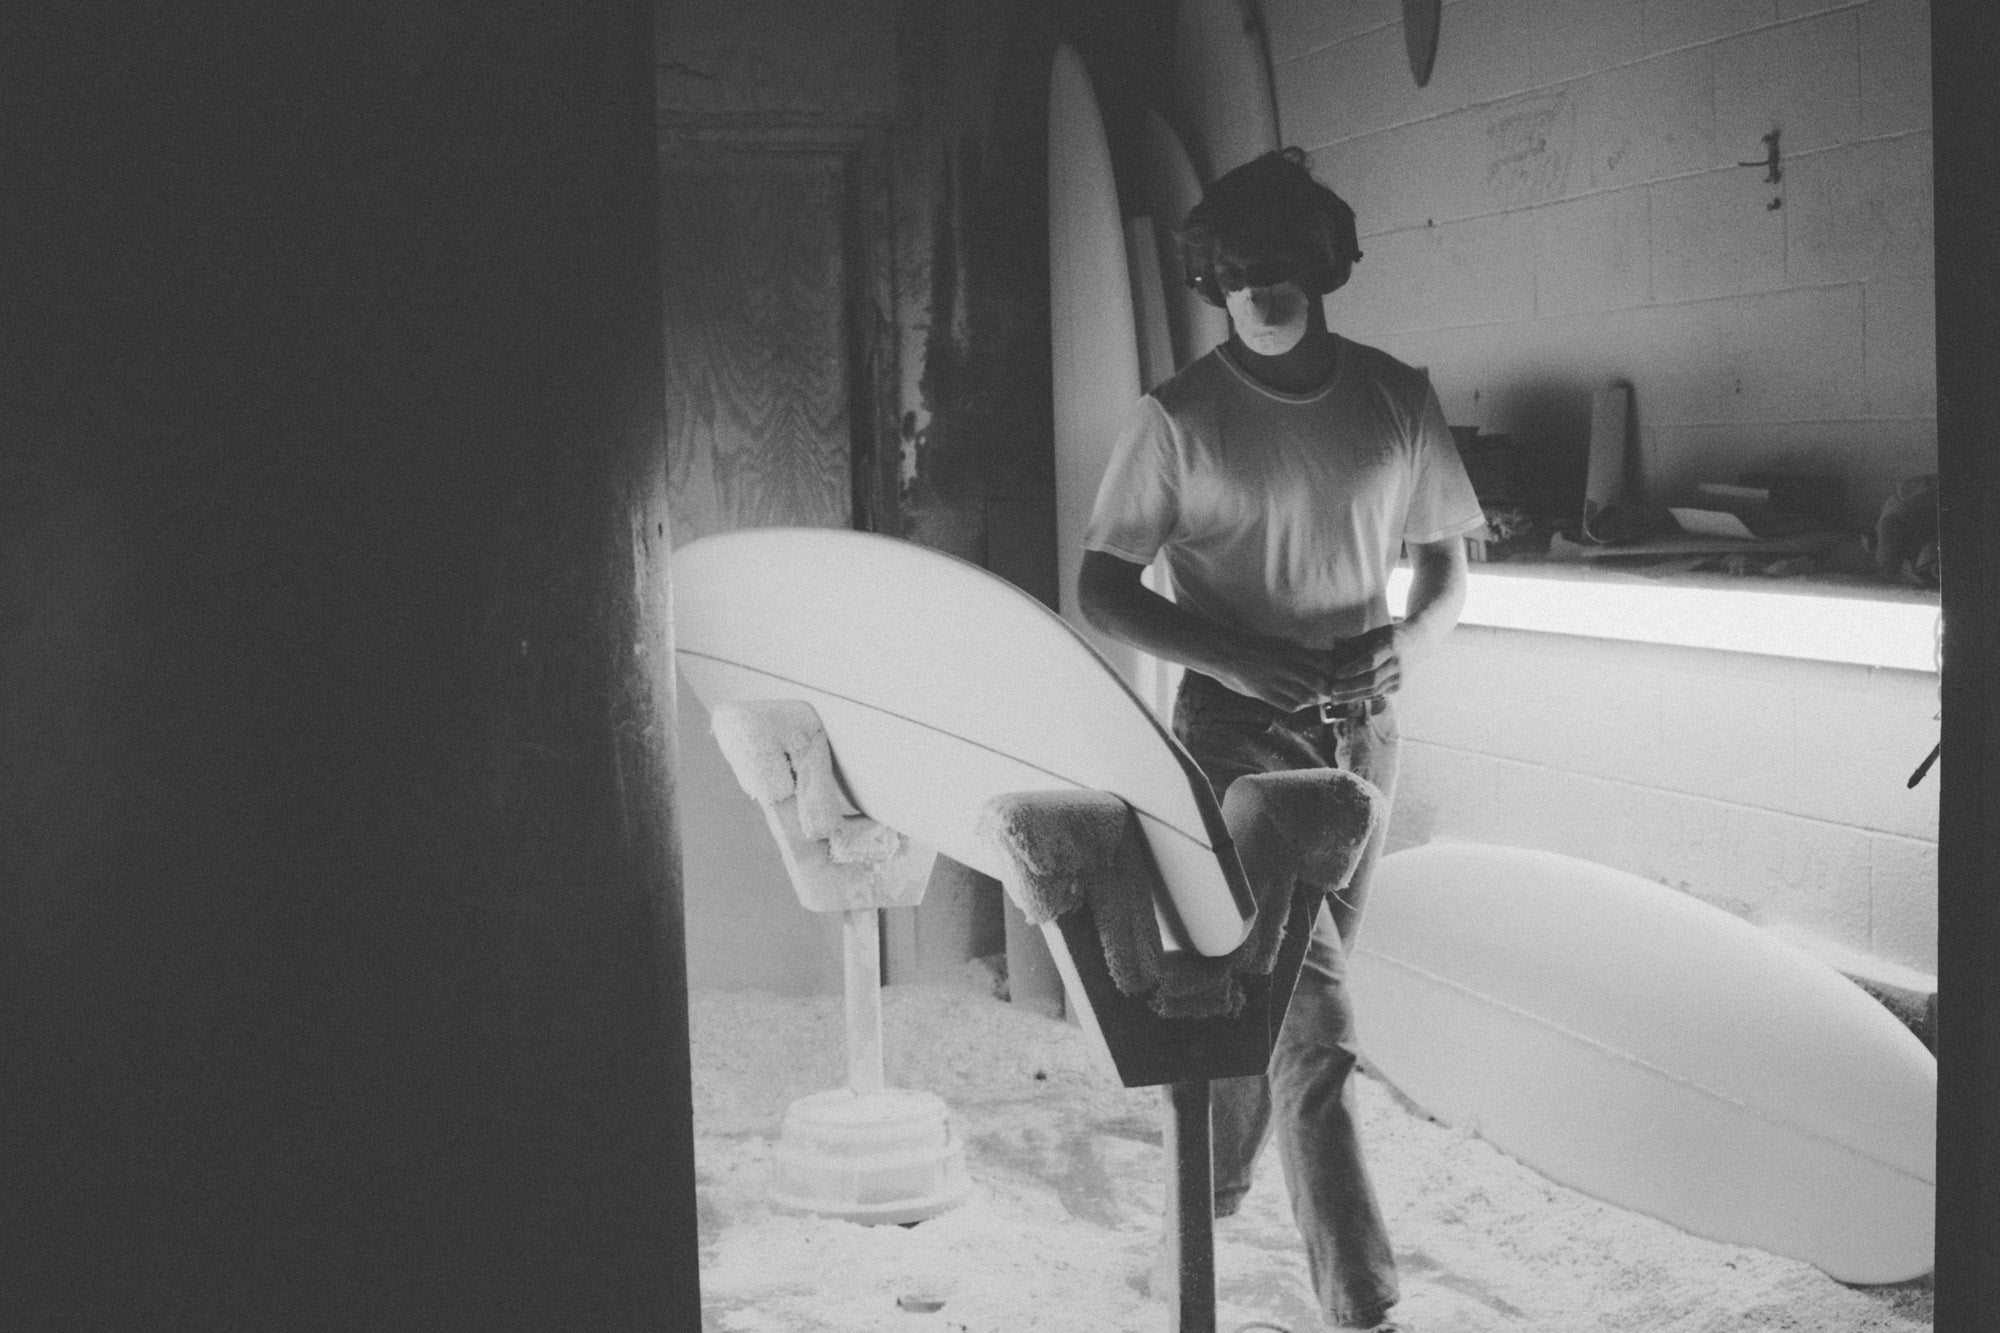 LIFE AROUND THE BEND | KRIS HALL SURFBOARDS